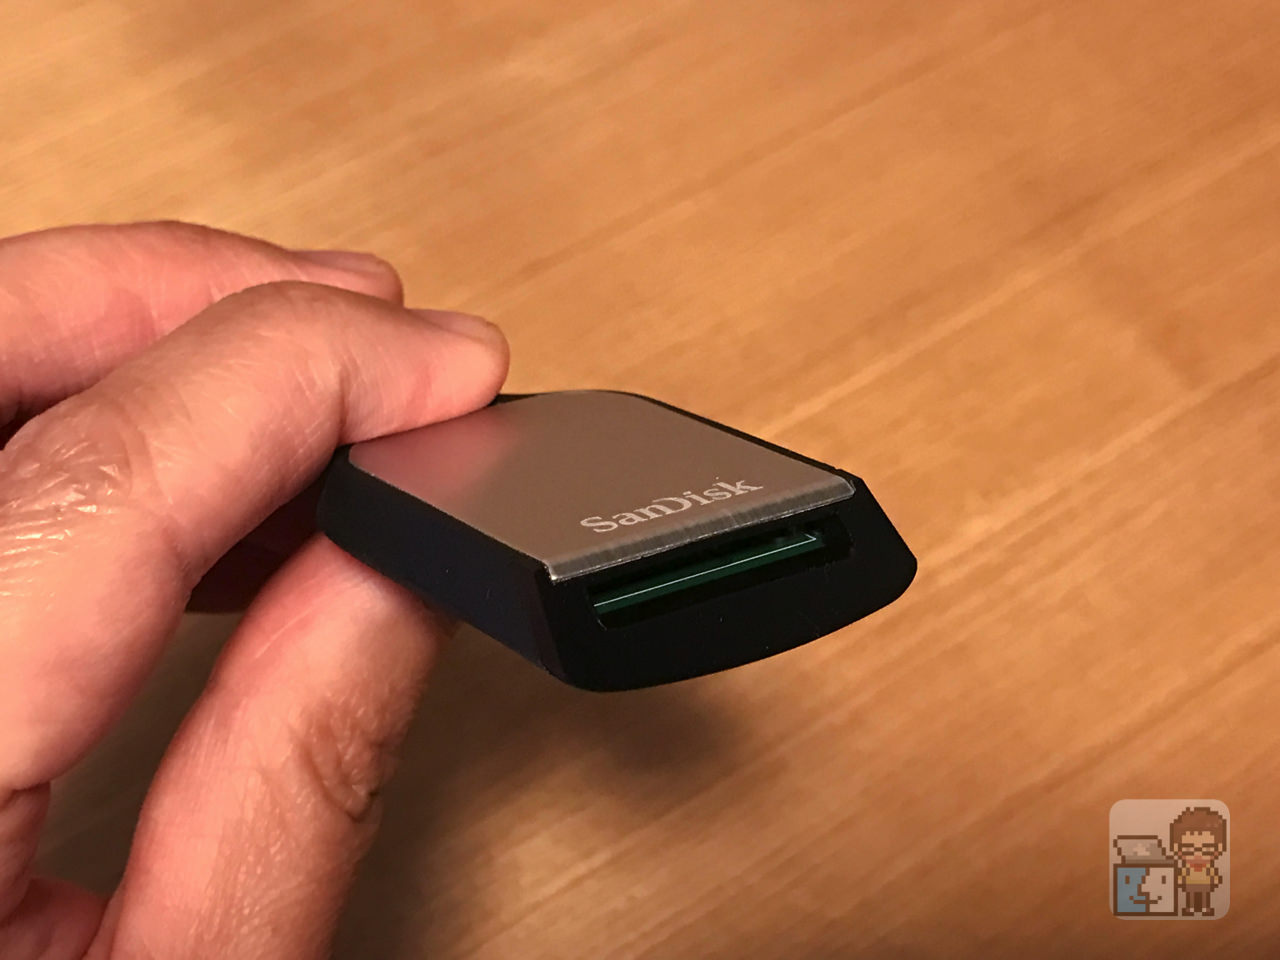 Sandisk extreme pro sd uhs ii card usb c reader review3